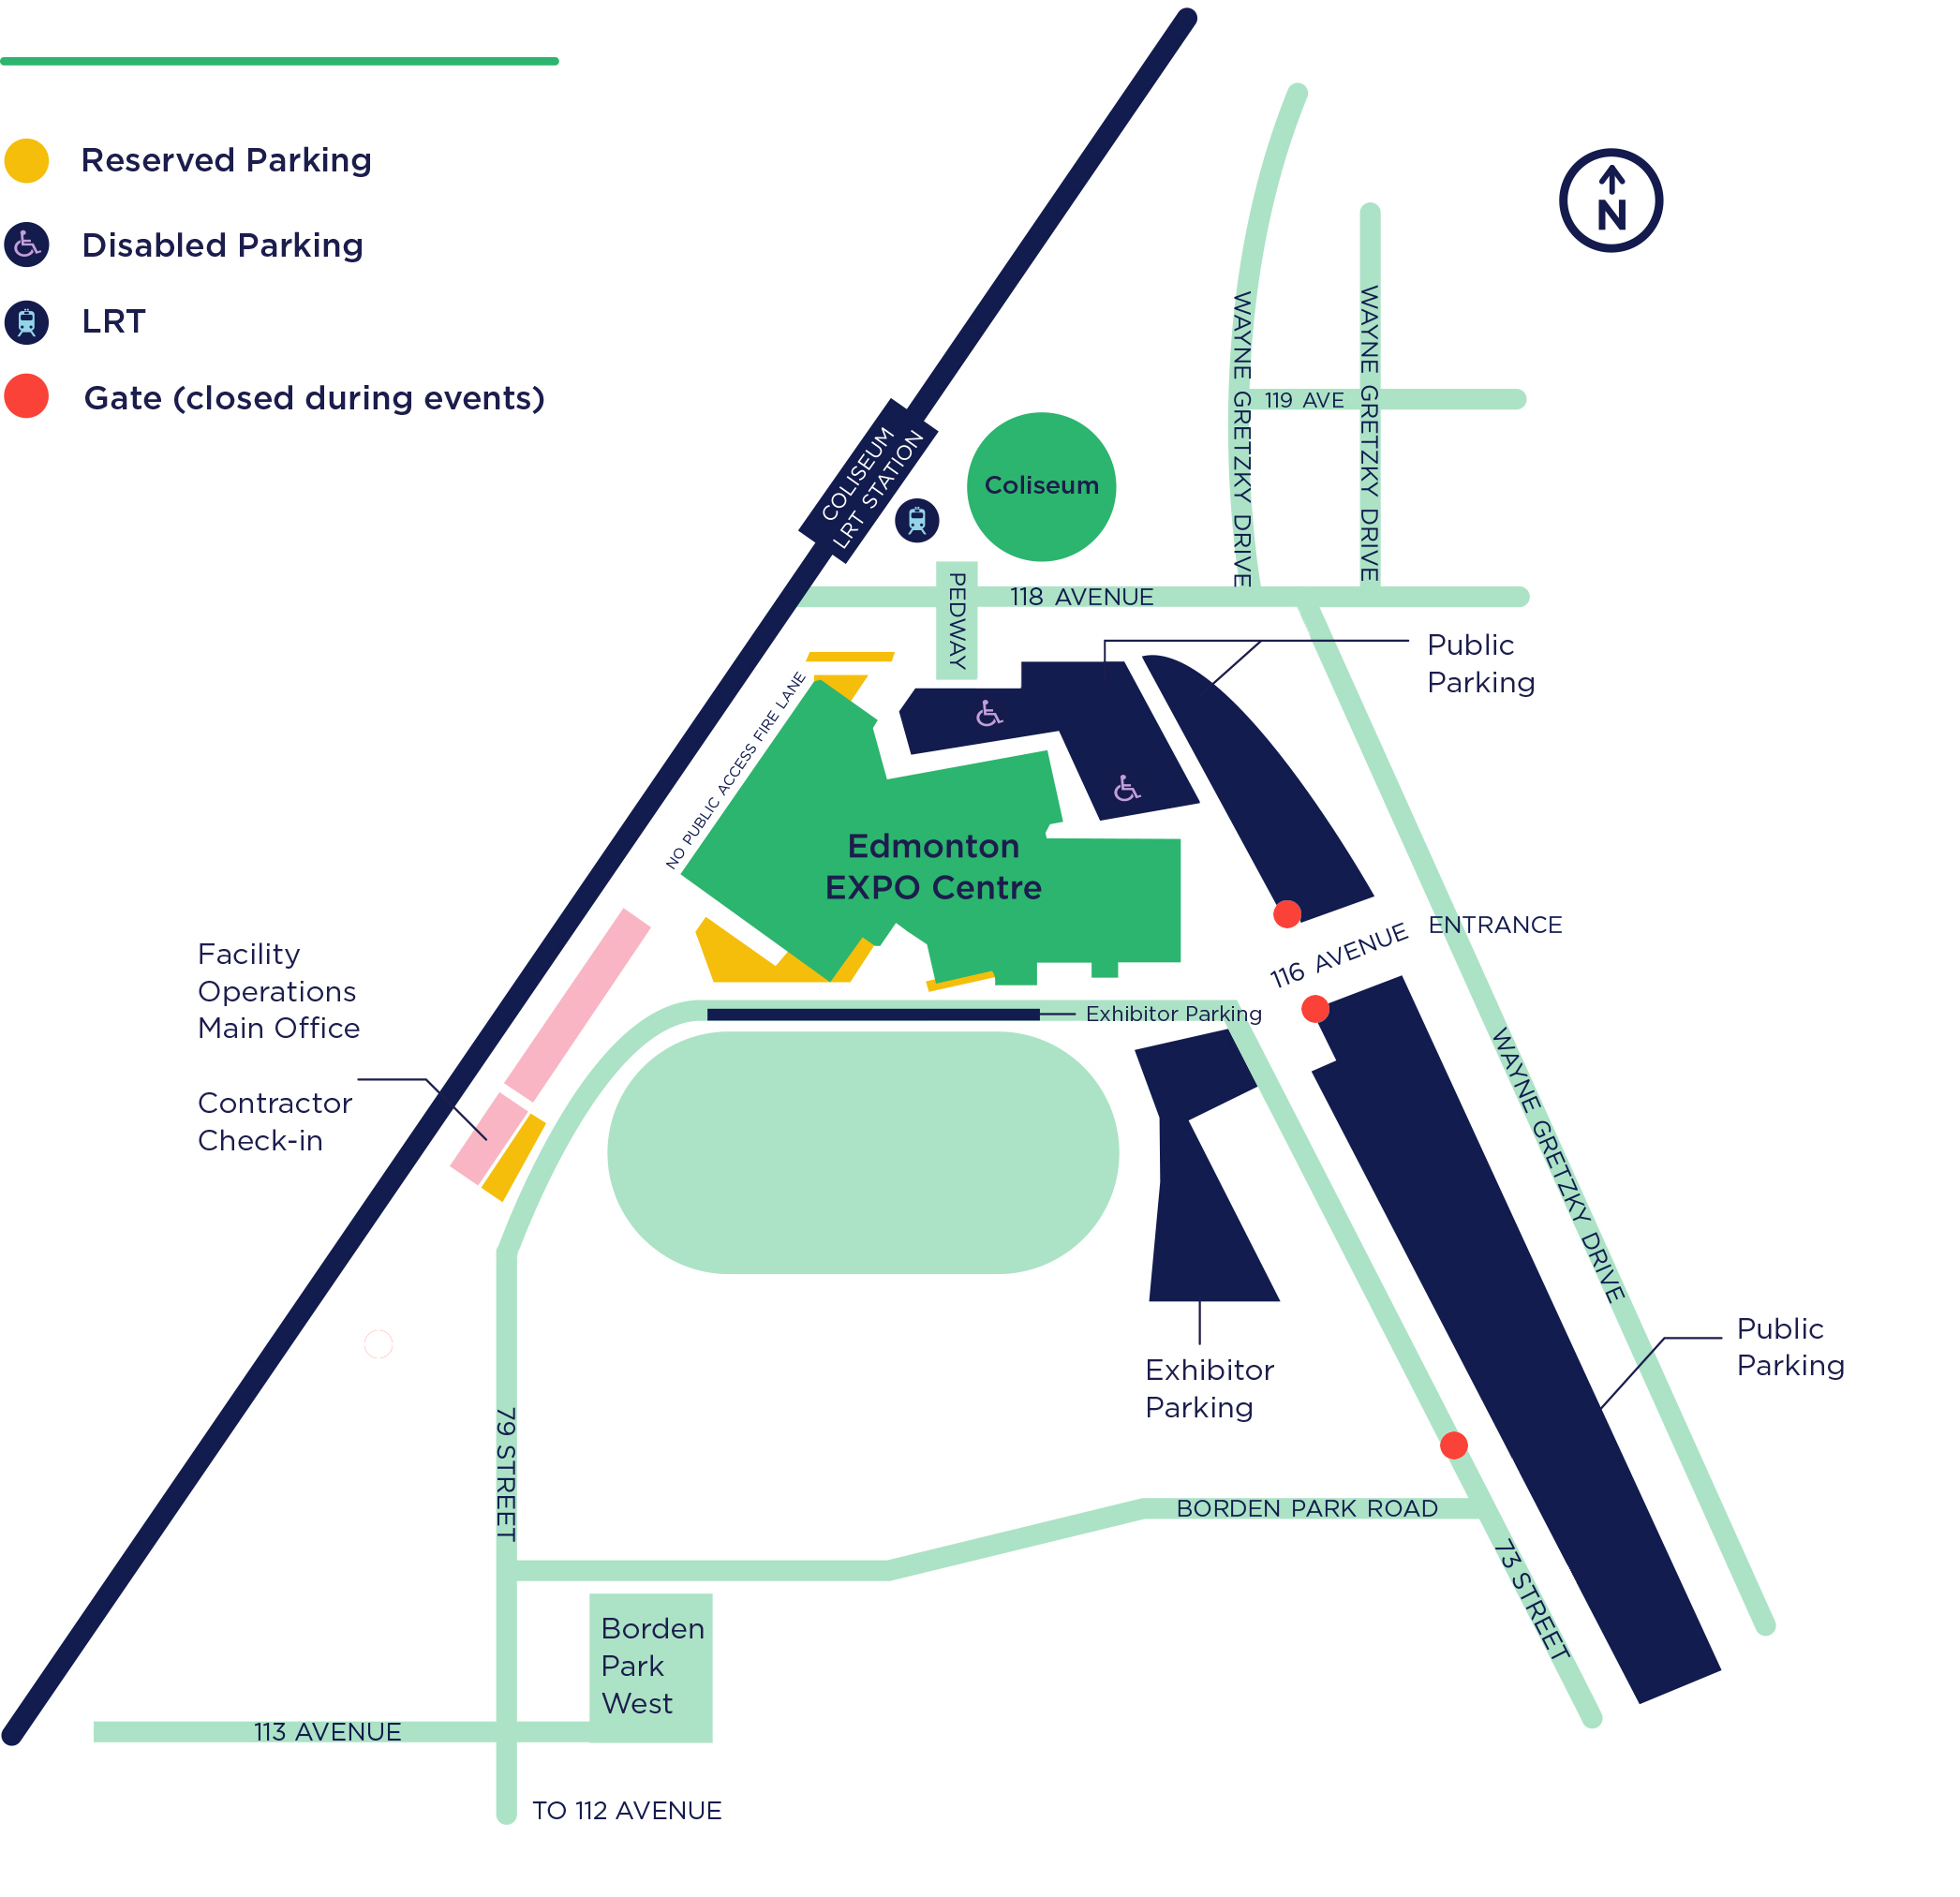 A grounds map of the EXPO Centre.